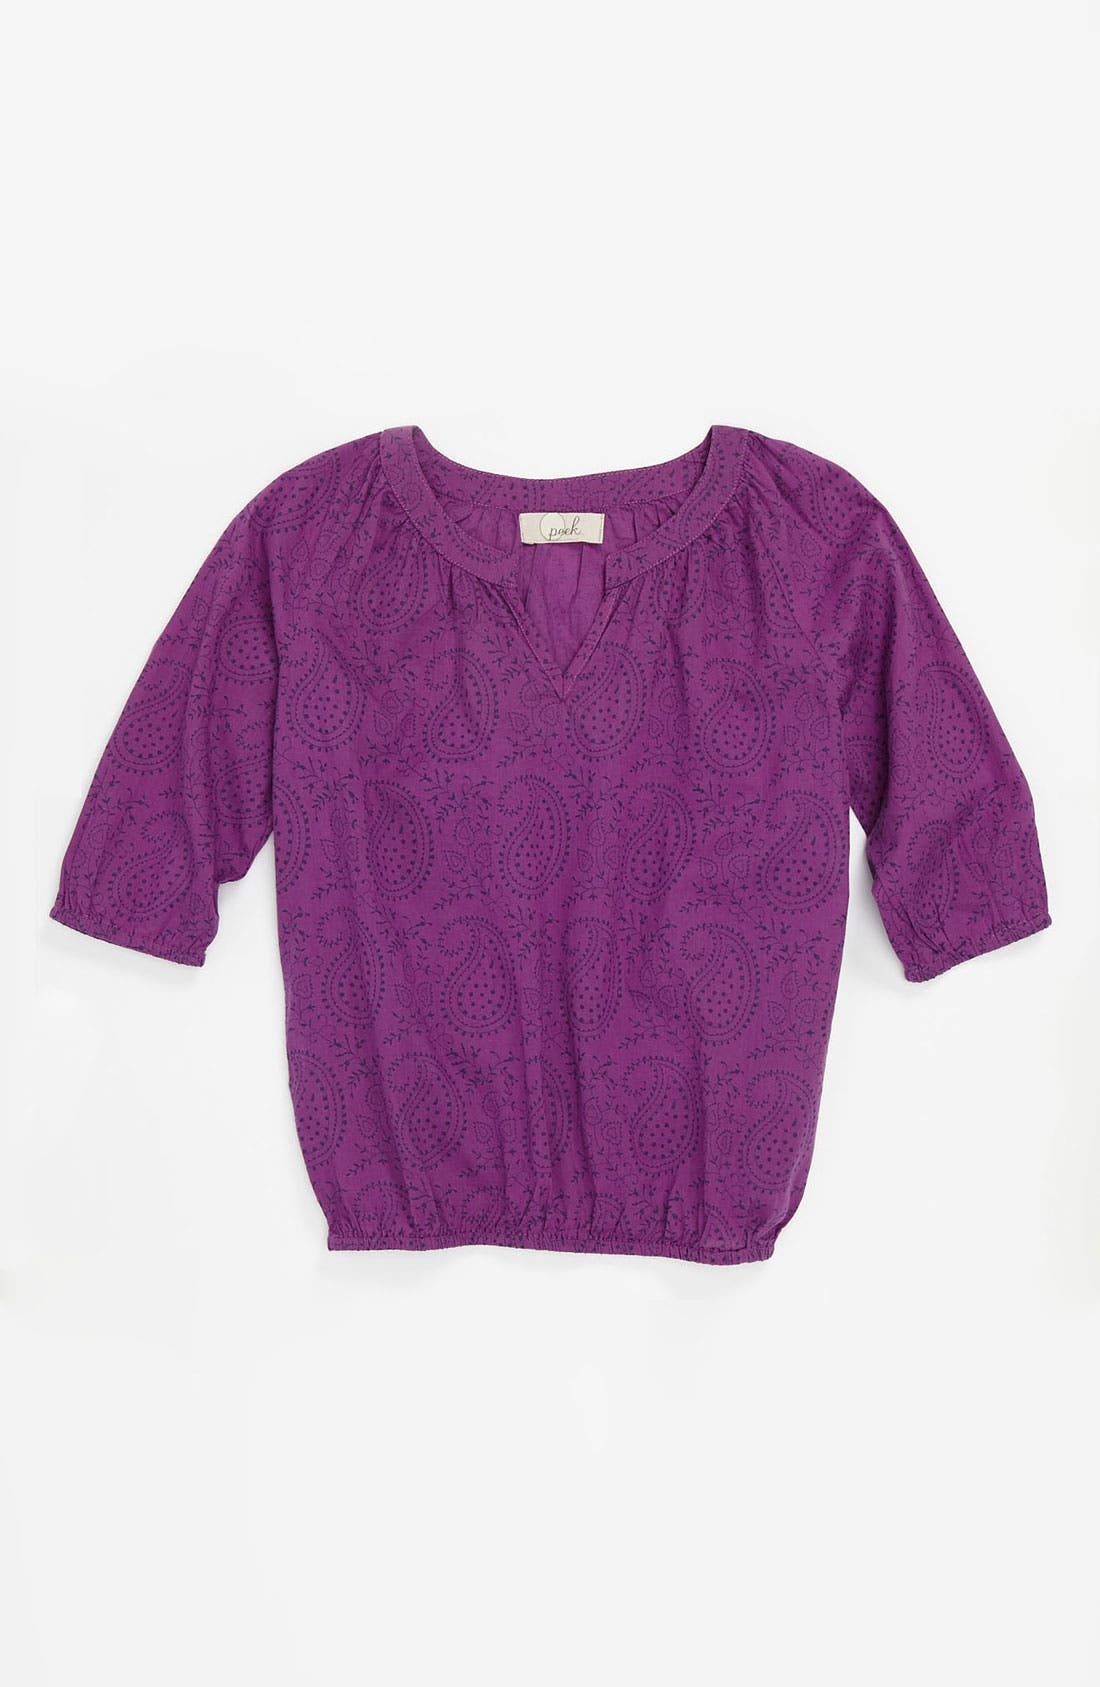 Main Image - Peek 'Murano' Top (Toddler, Little Girls & Big Girls)